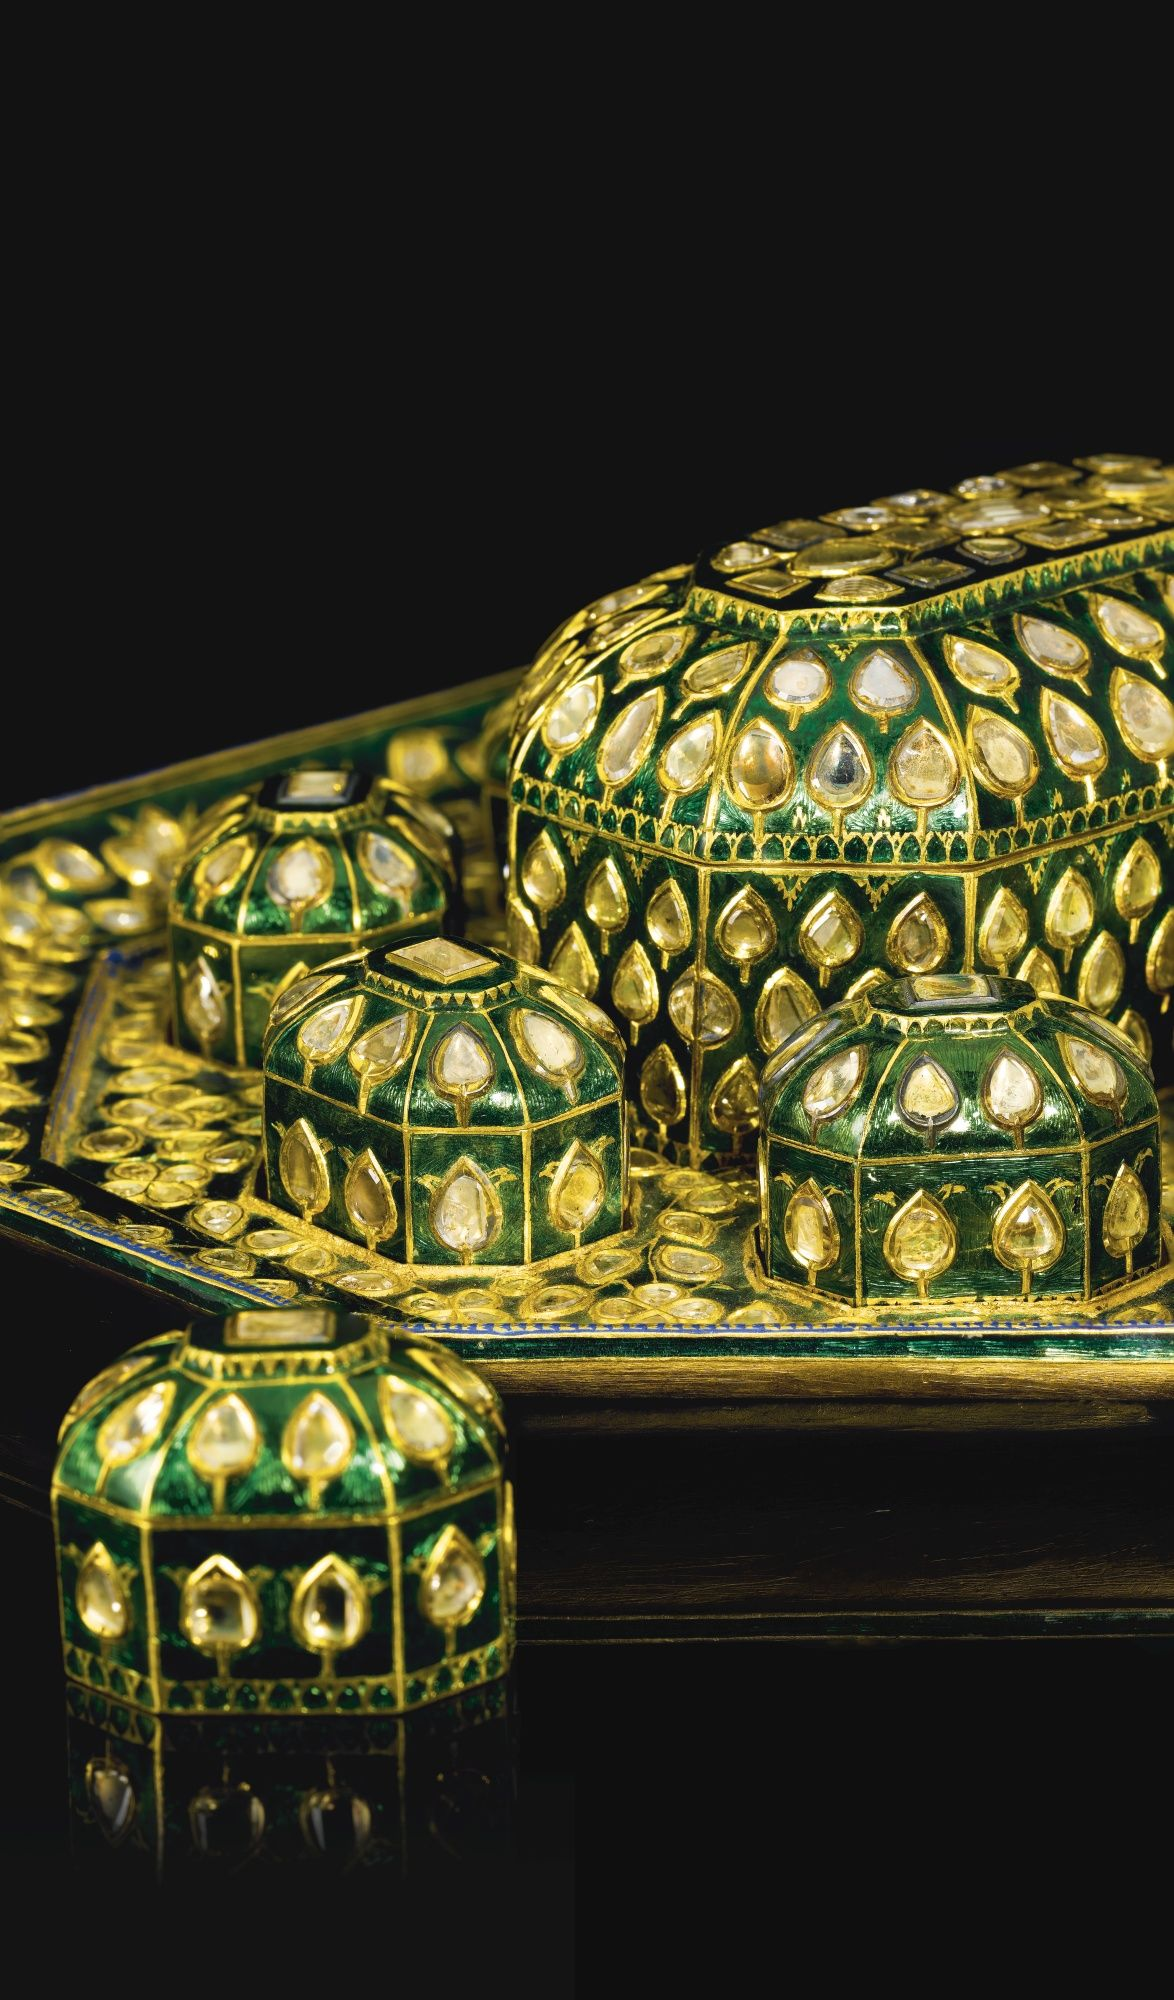 AN EXCEPTIONAL DIAMOND-SET AND ENAMELLED GOLD TRAY AND CASKET (PANDAN), NORTH INDIA, 18TH CENTURY. comprising a gold, eight-sided tray featuring a large, domed box fitted in the centre surrounded by eight small boxes, the surface covered with a bright green enamel ground and flat-cut diamonds set in the kundan technique designed as flowers and leafy buds